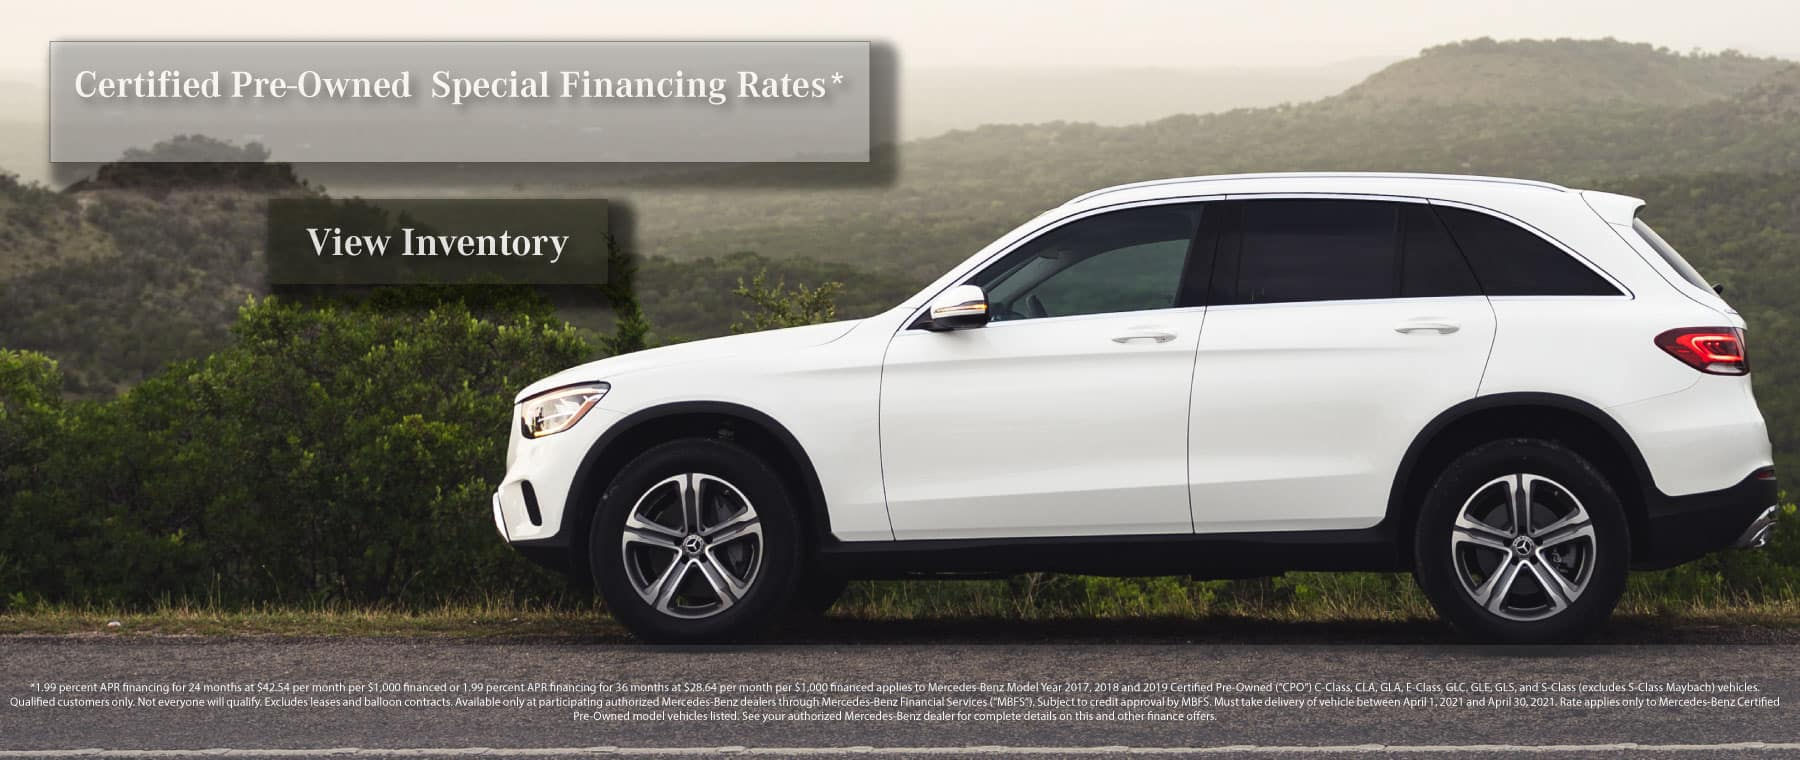 Mercedes-Benz Certified Pre Owned Financing Special